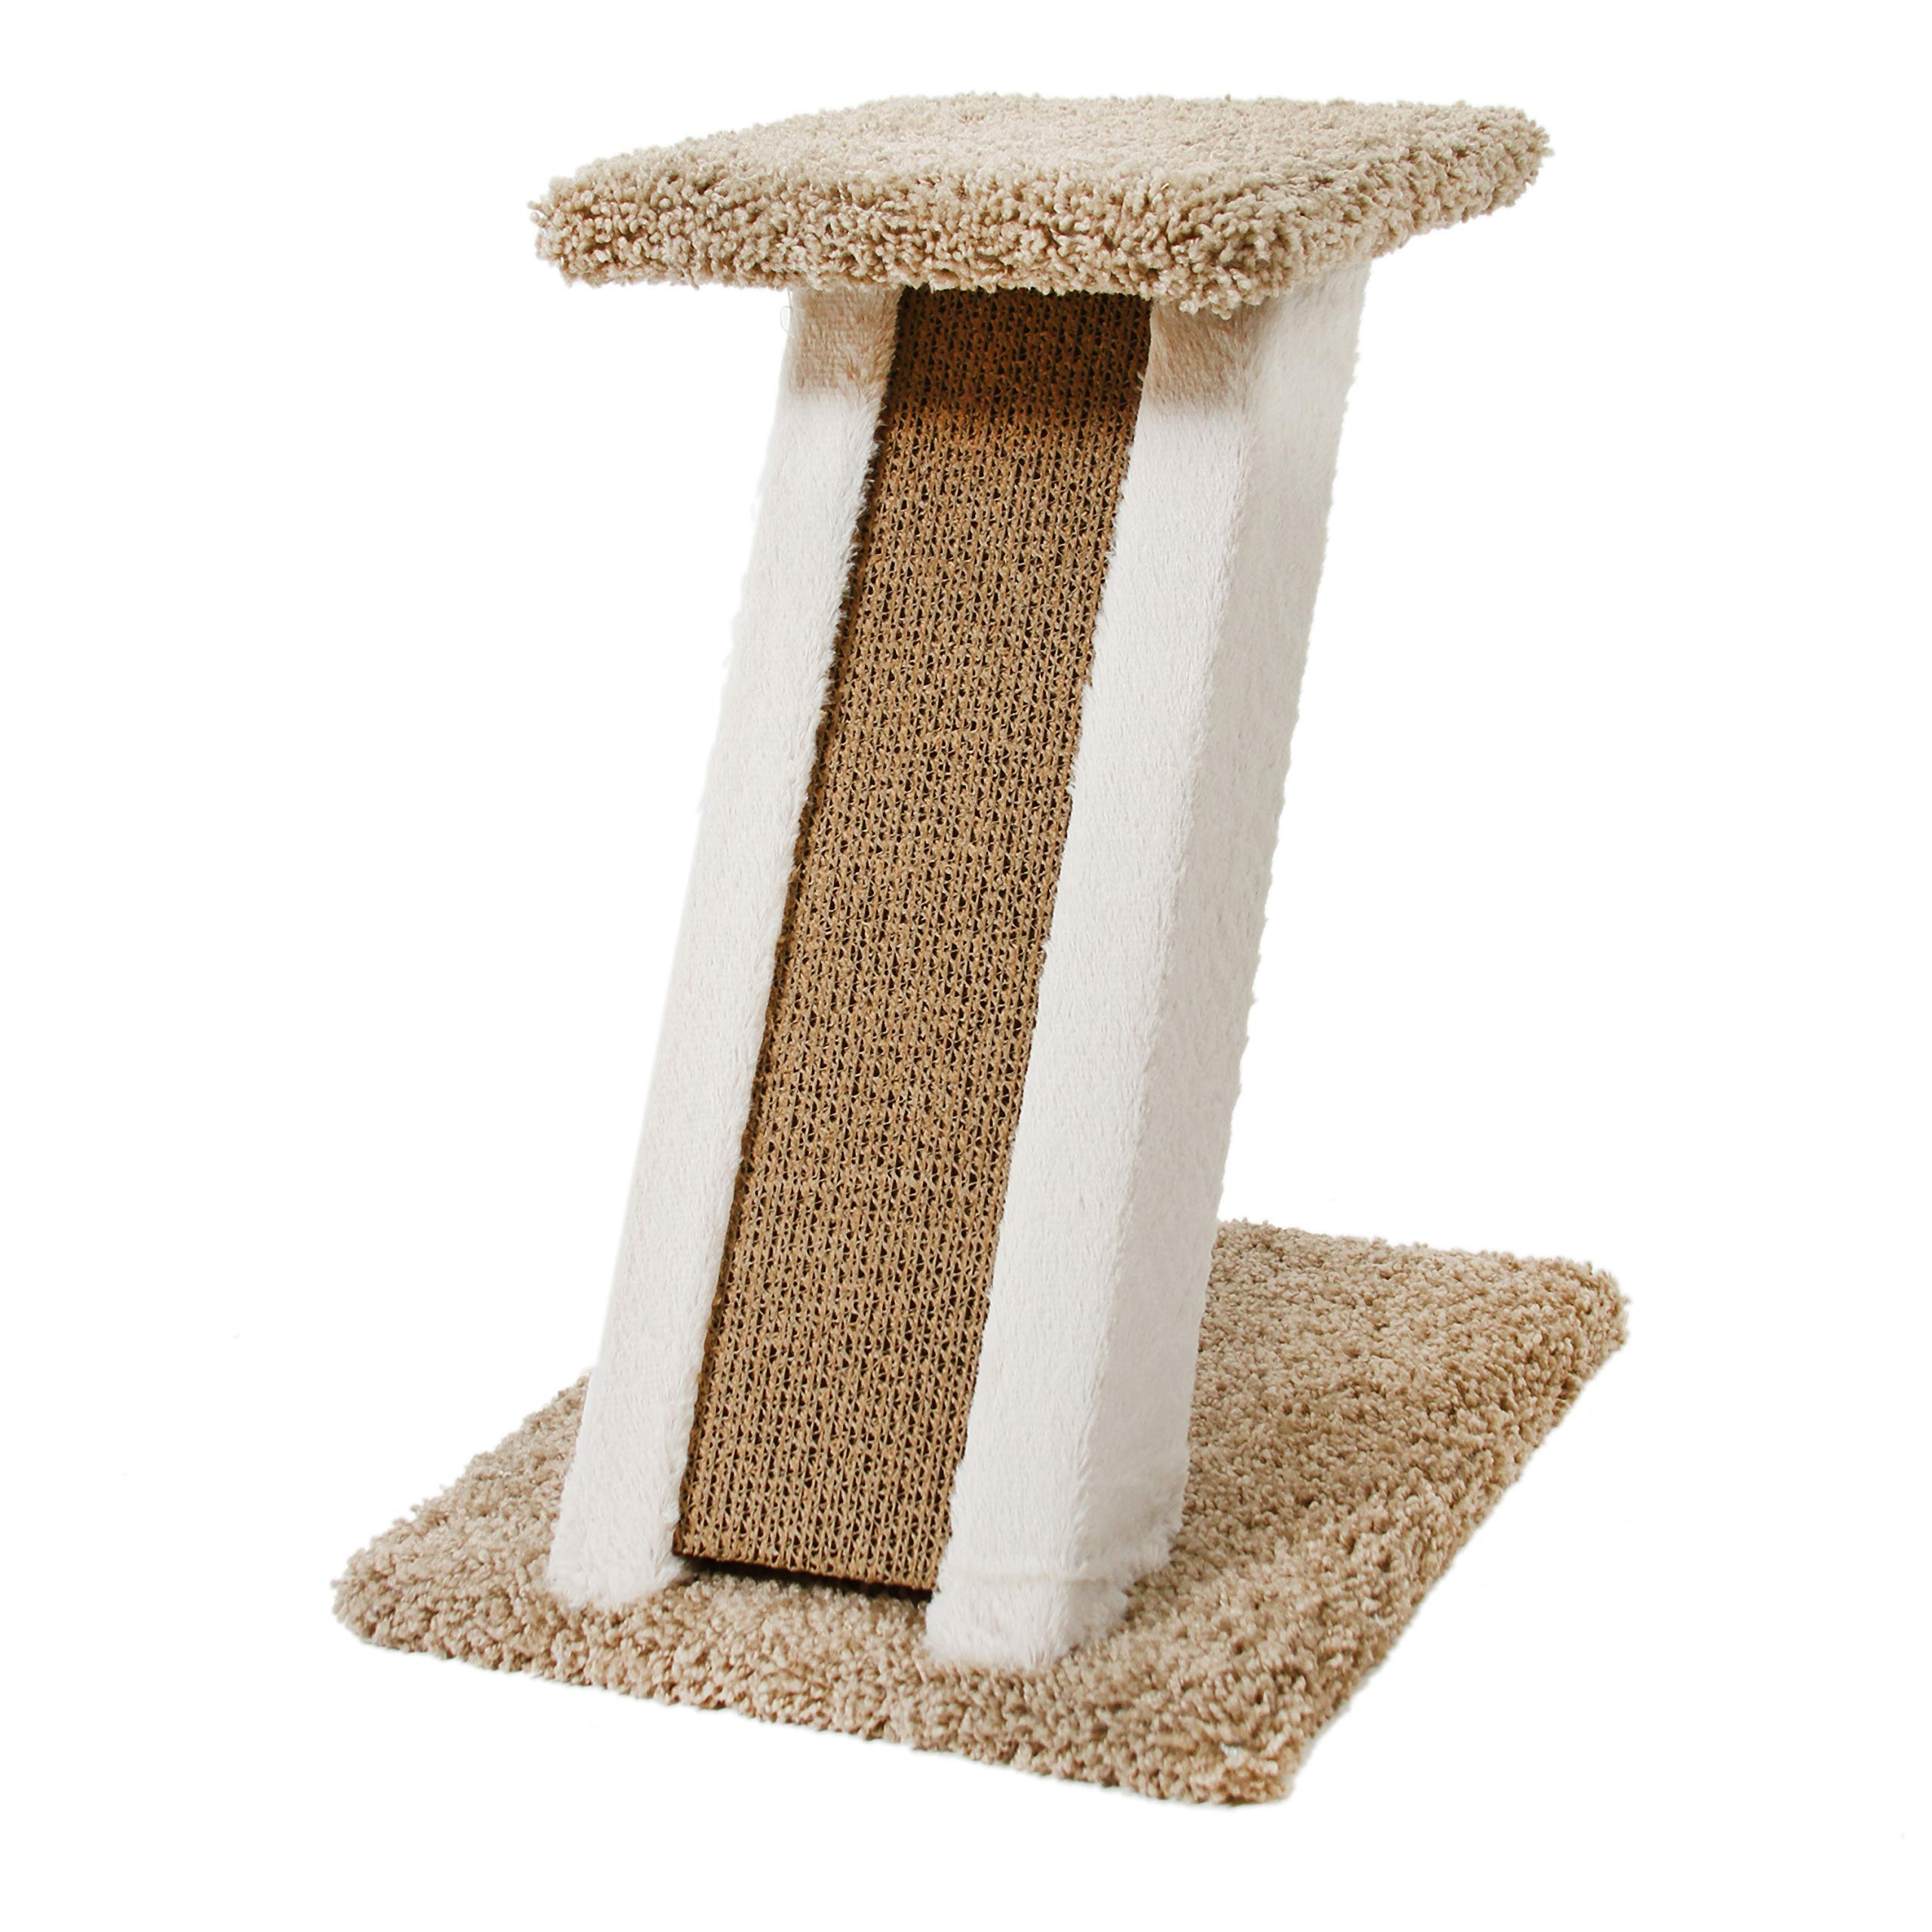 Classy Kitty 22'' Slant Post With Cardboard Insert 13.8x20x15.8 by North American Pet